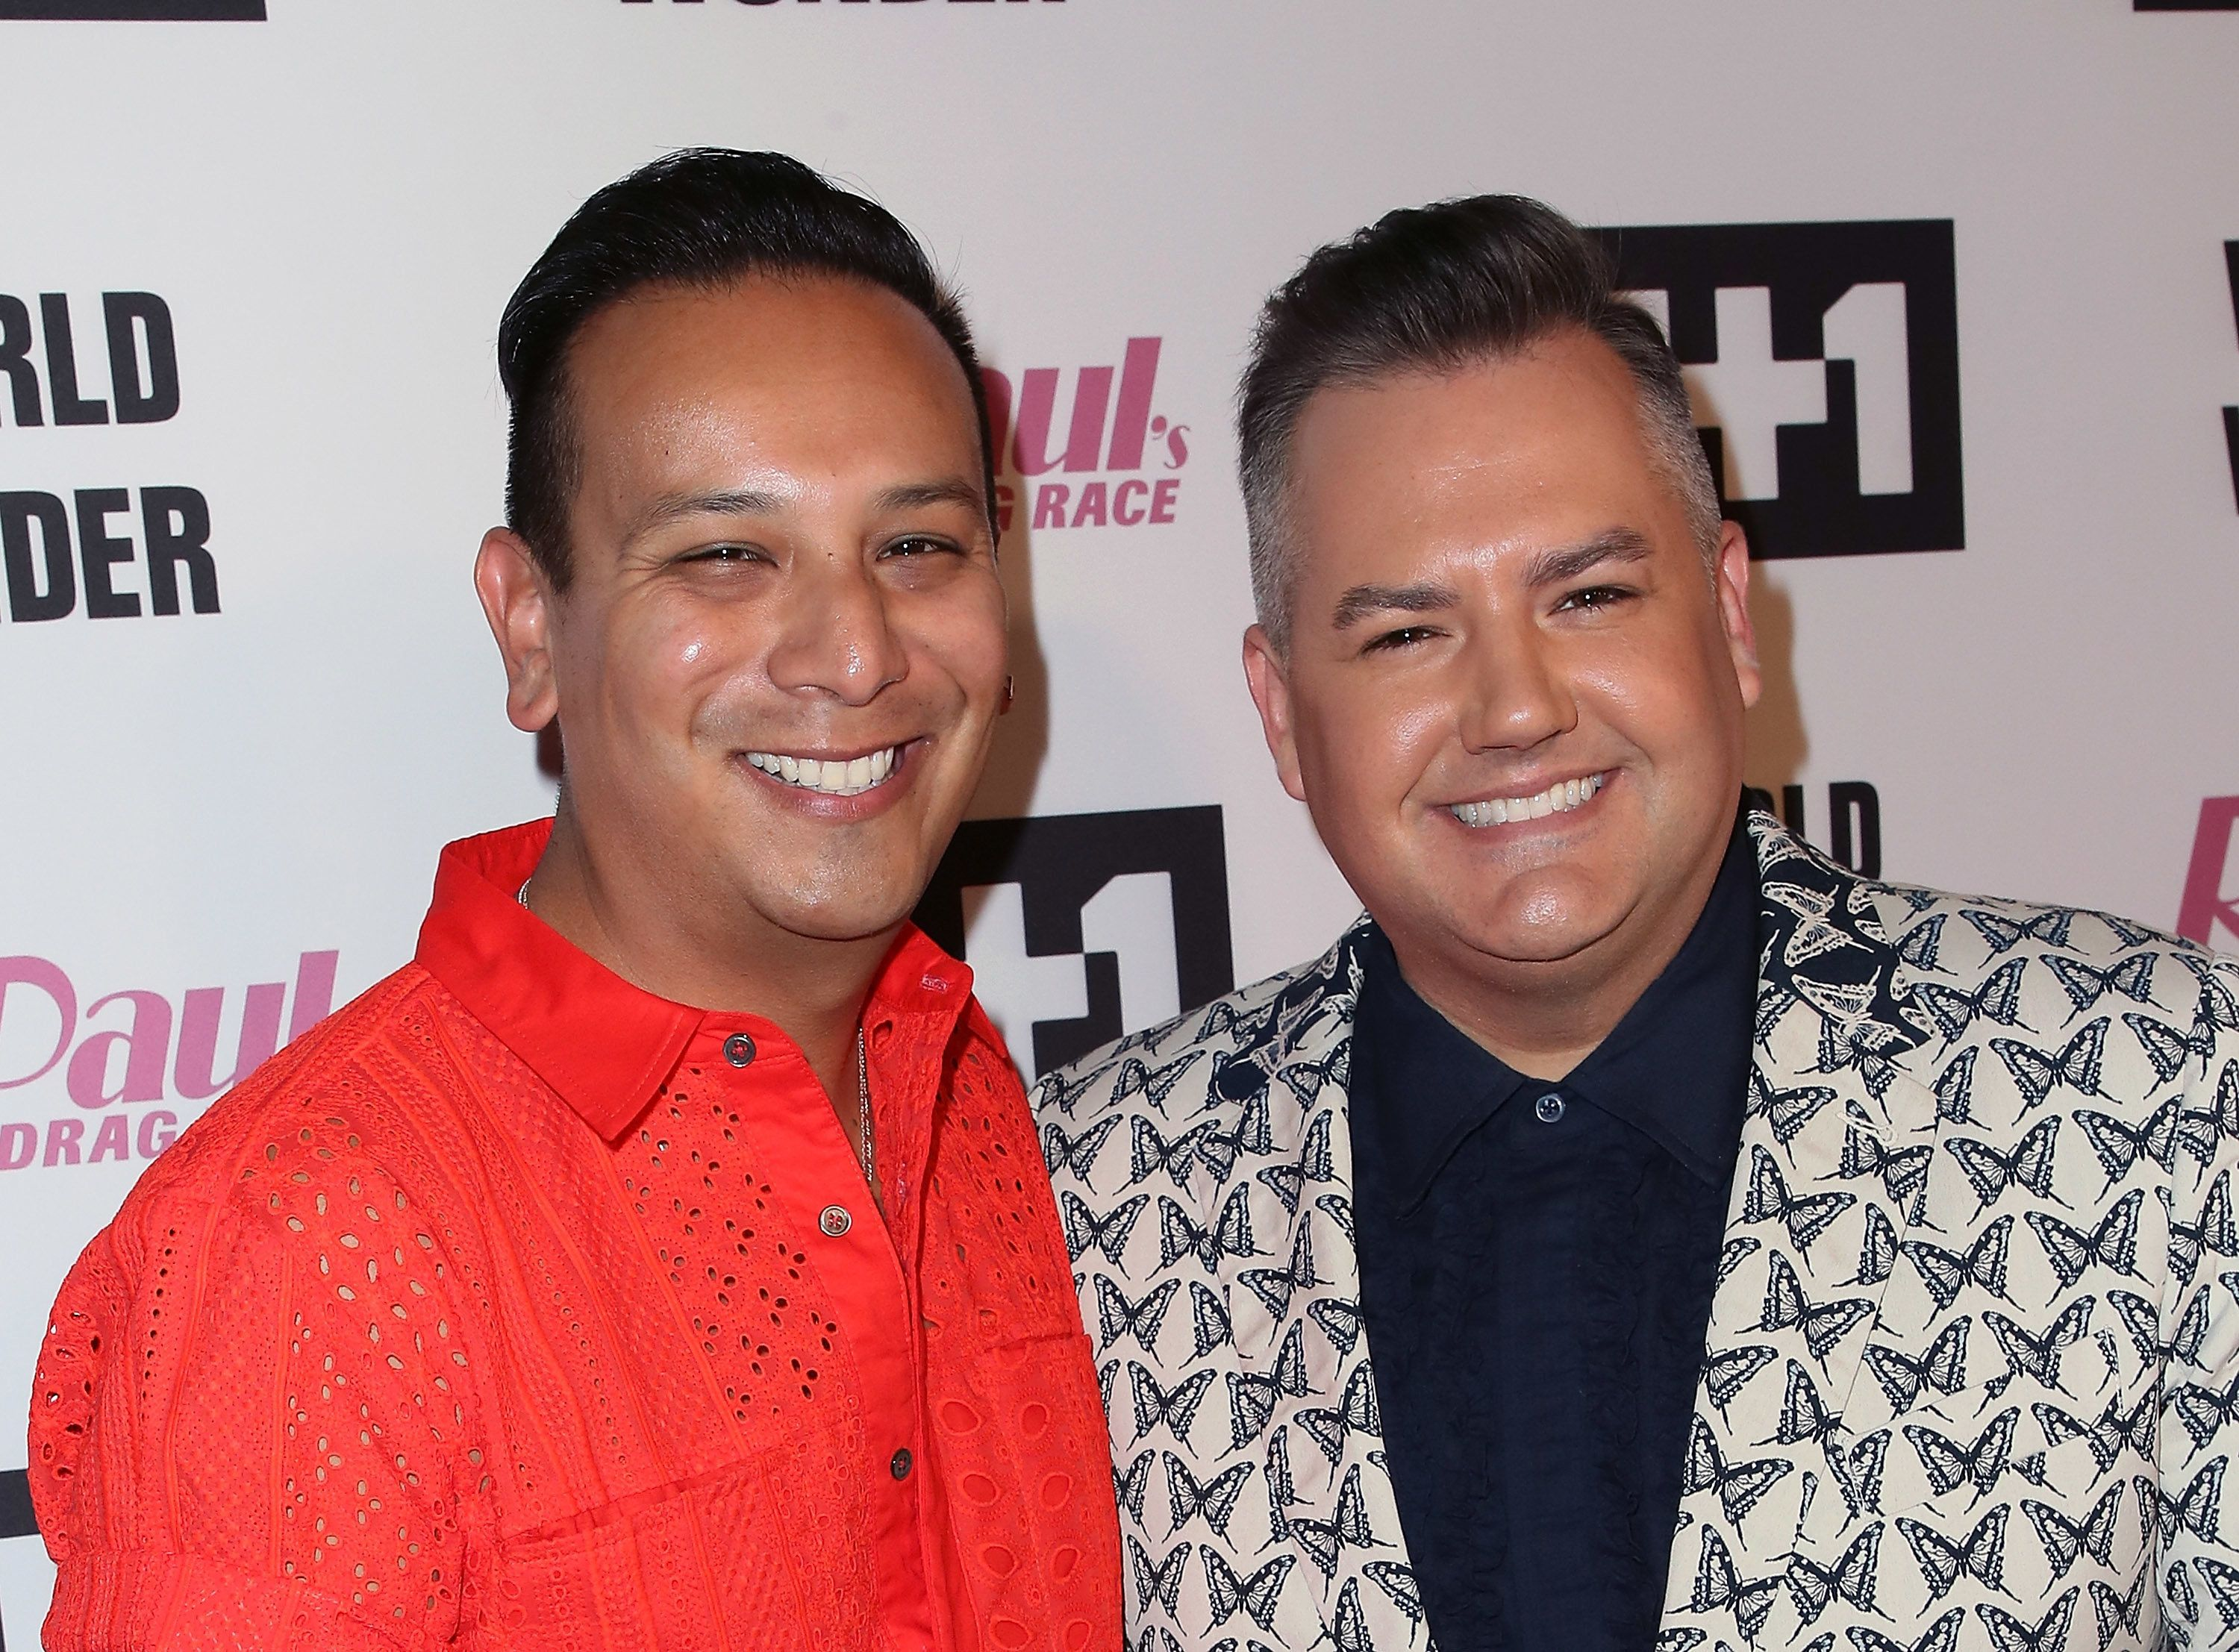 Ross Mathews Splits From Longtime Boyfriend Salvador